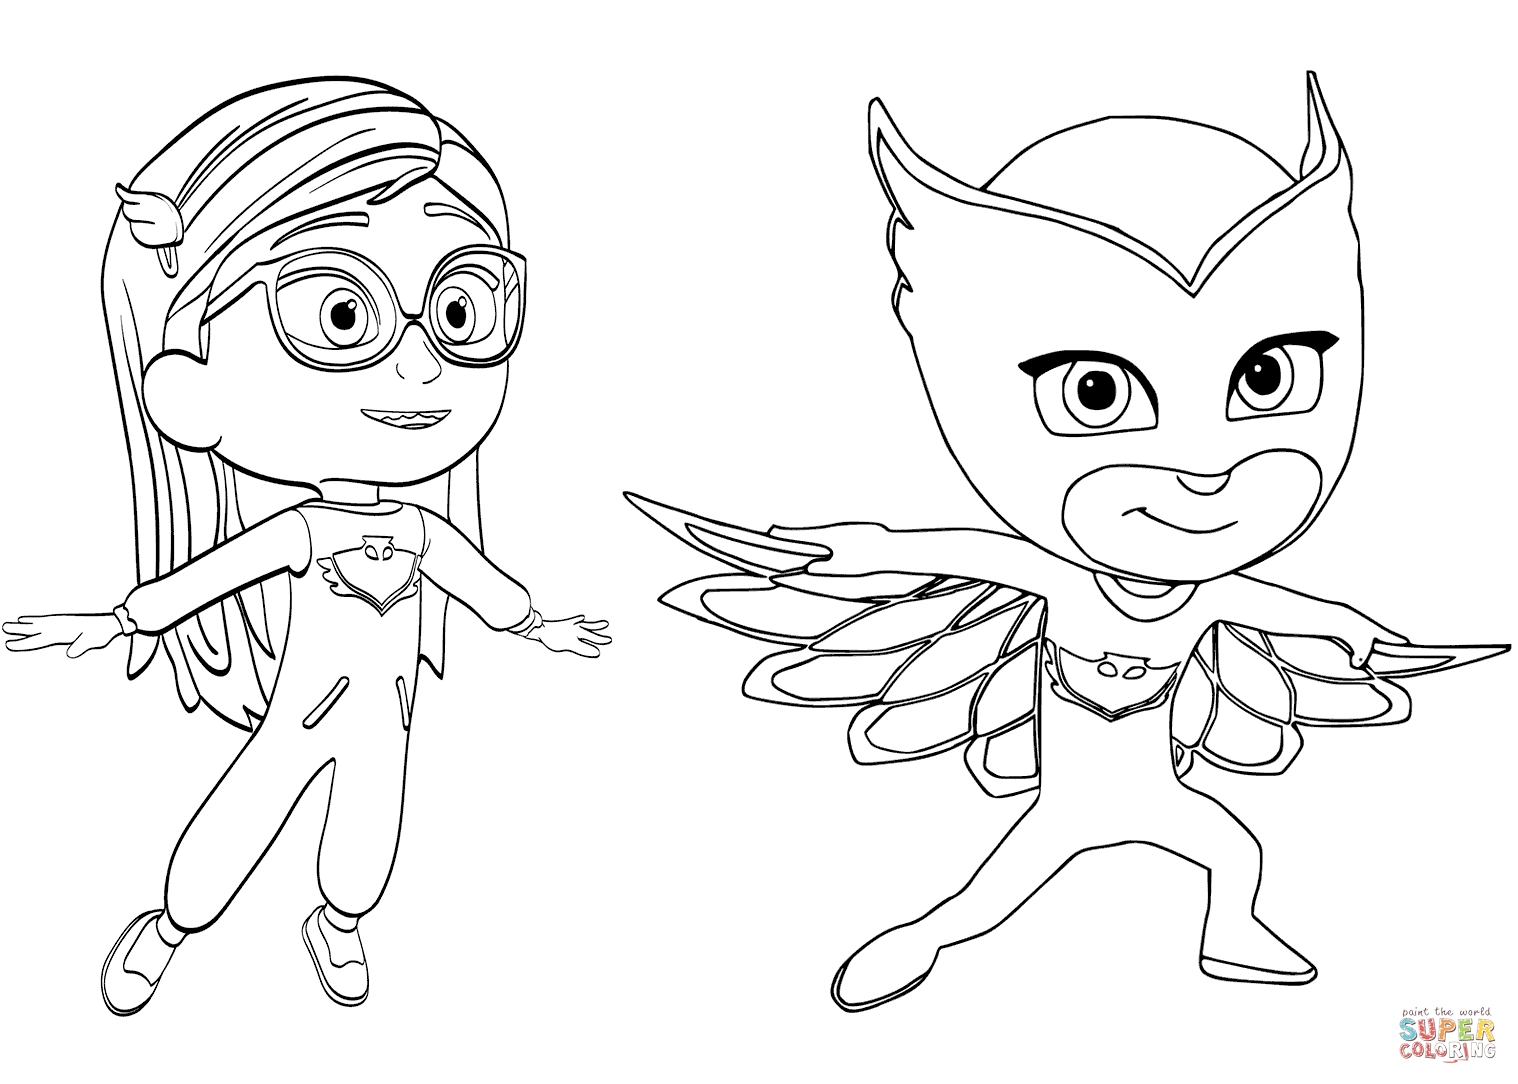 Owlette Coloring Page   Pajama Hero Amaya Is Owlette From Pj Masks